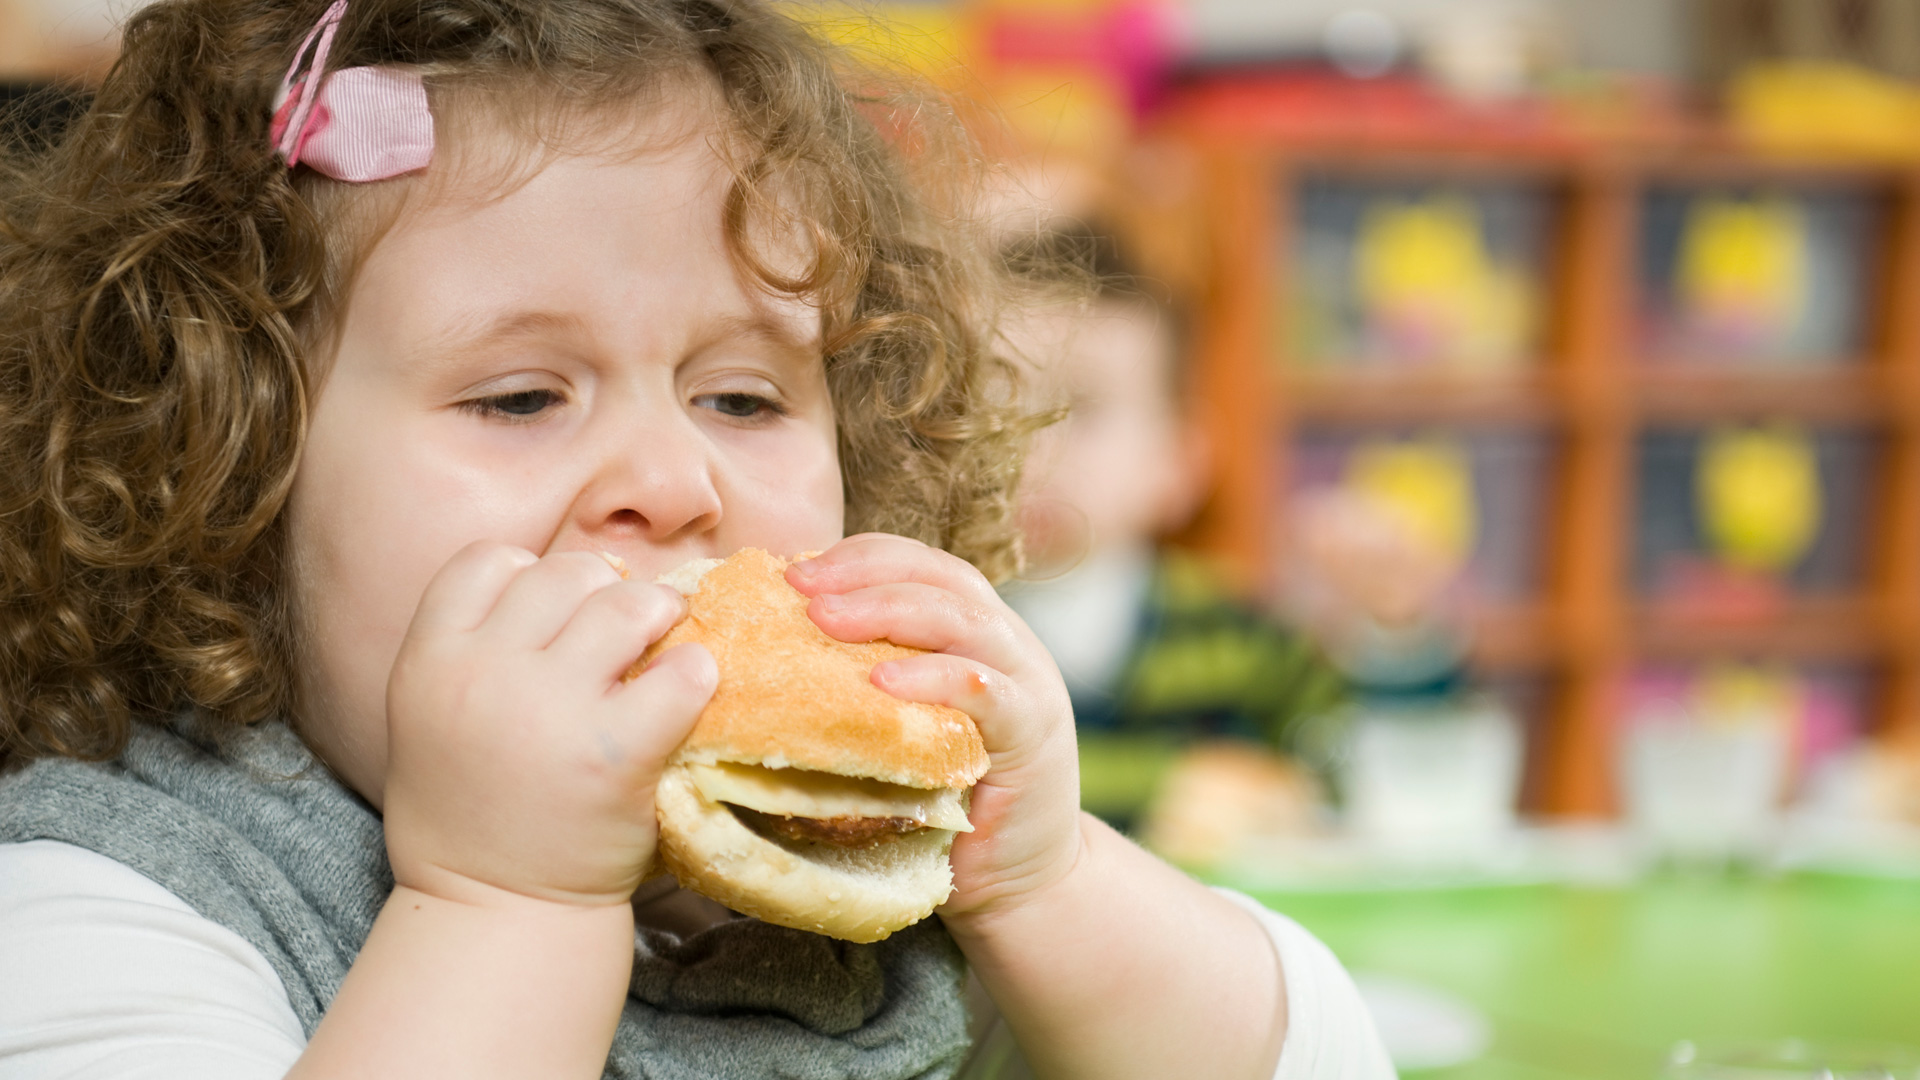 Recent study on overweight children